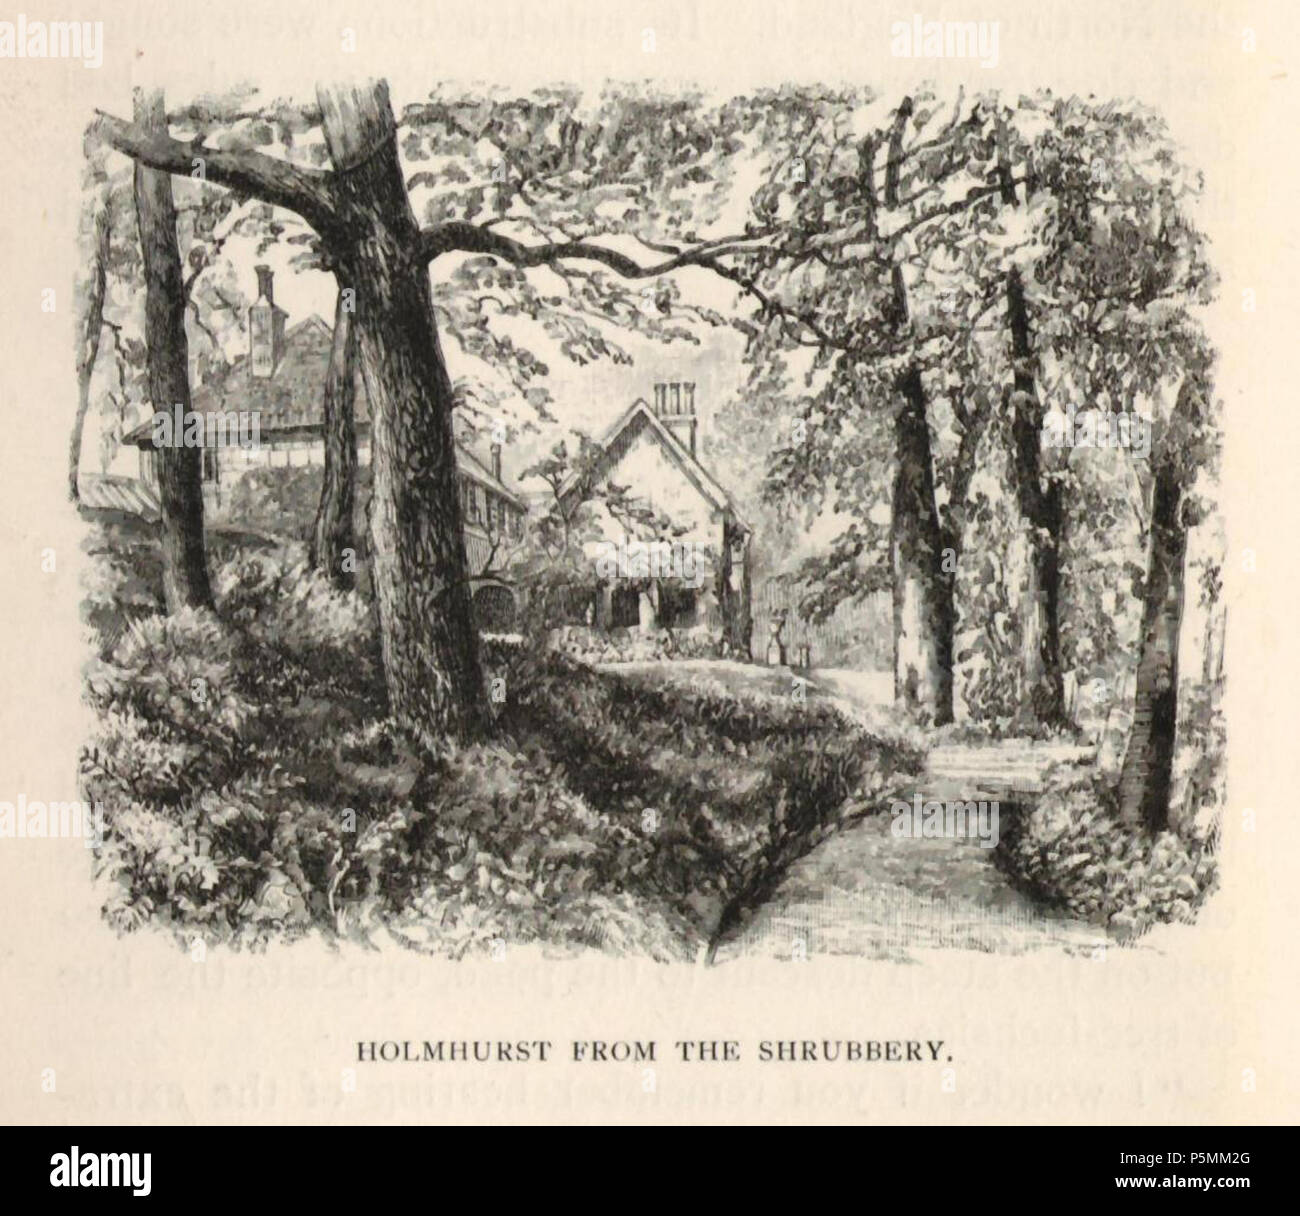 N/A. English: Augustus John Cuthbert Hare (13 March 1834 – 22 January 1903) was an English writer and raconteur. Drawings of his house at Holmhurst St Mary near Hastings. Agnes Mason uised this house as a convent. Guess these drawings at 1885 . 2 January 1885. Augustus Hare,s drawings of his house Holmhurst St Mary. This became a convent led by Agnes Mason - Augustus John Cuthbert Hare (13 March 1834 – 22 January 1903) was an English writer and raconteur. 144 At holmhurst from the shrubbery - Stock Image